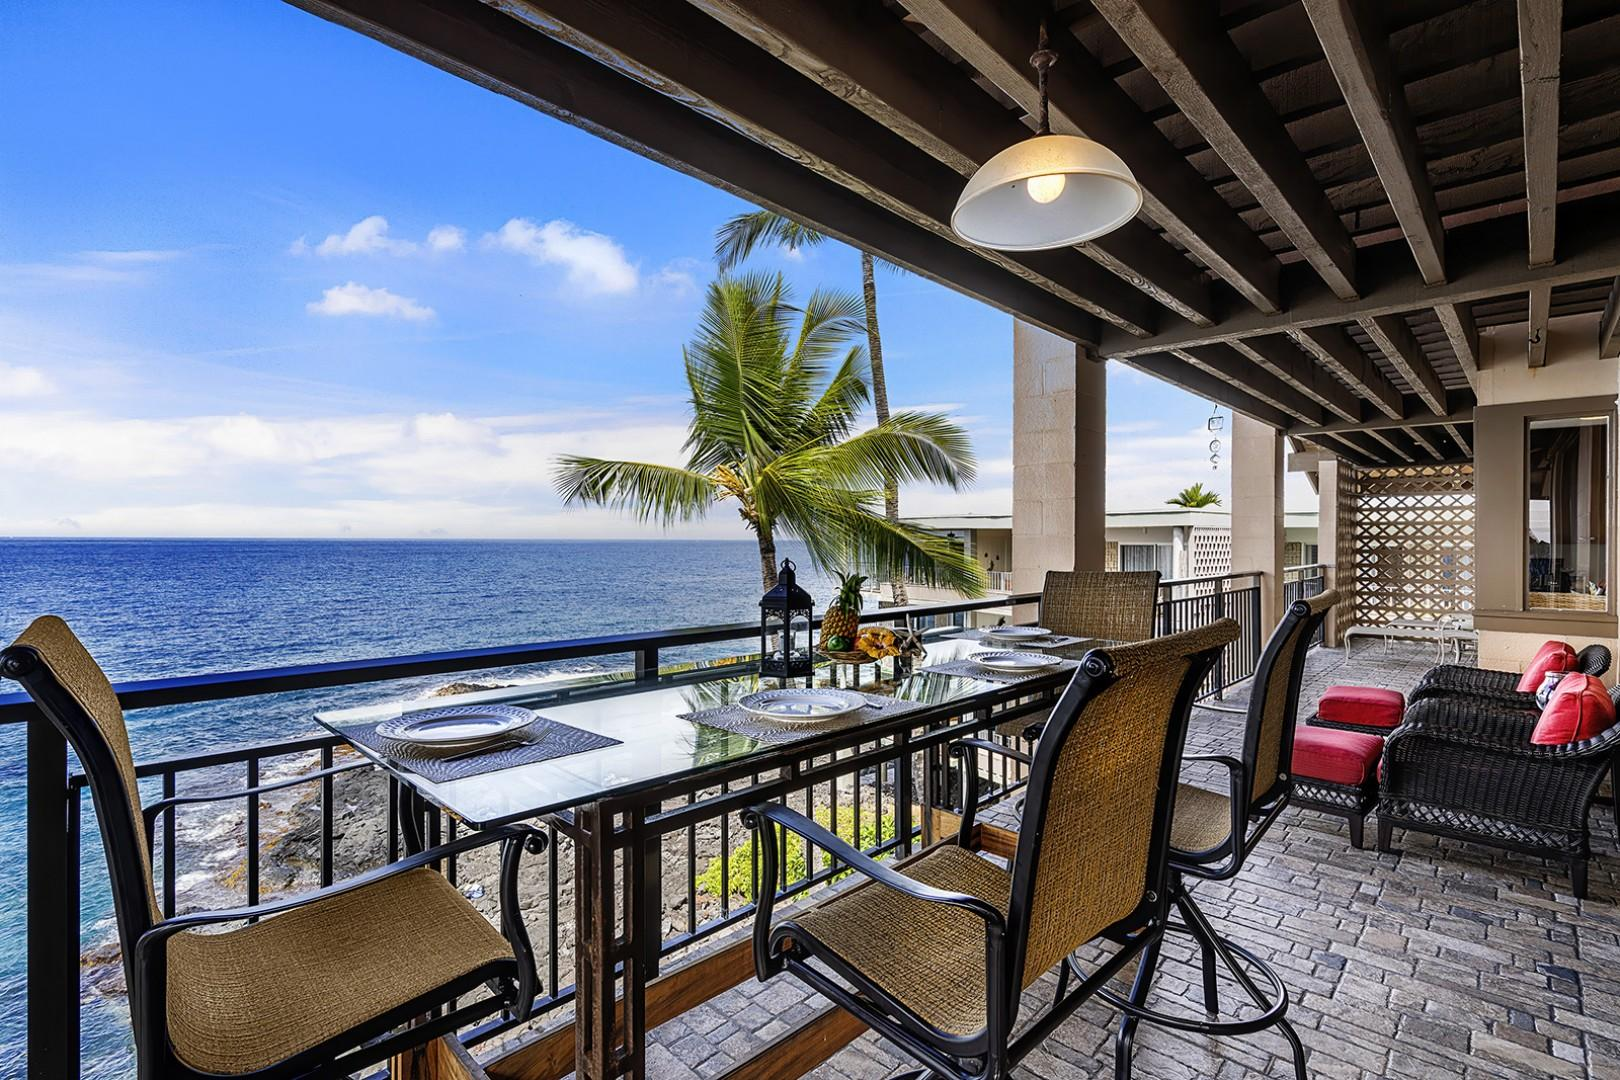 Dine on the ocean daily in this top floor condo!